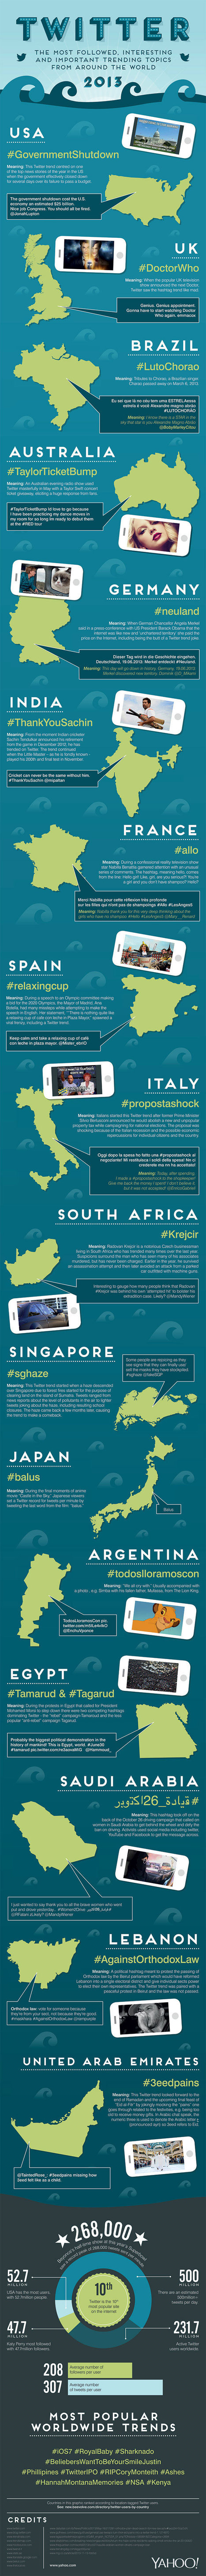 "The Top Twitter Trends Of 2013 [INFOGRAPHIC] | ""#Google+, +1, Facebook, Twitter, Scoop, Foursquare, Empire Avenue, Klout and more"" 